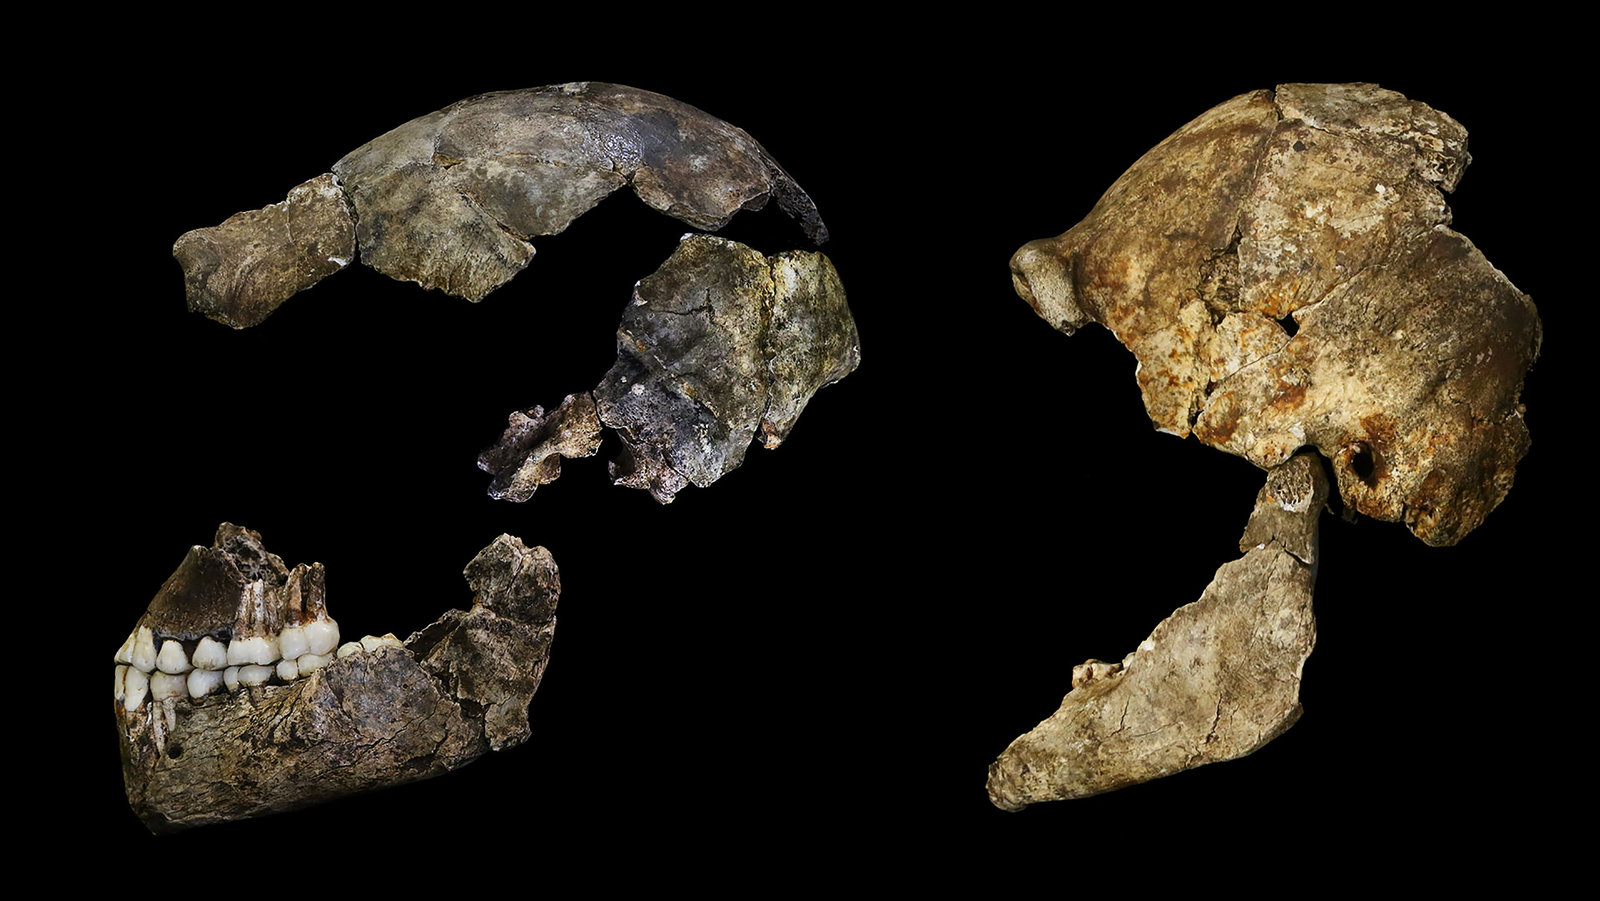 Tiny Brains Of Extinct Human Relative Had Complex Features The New York Times